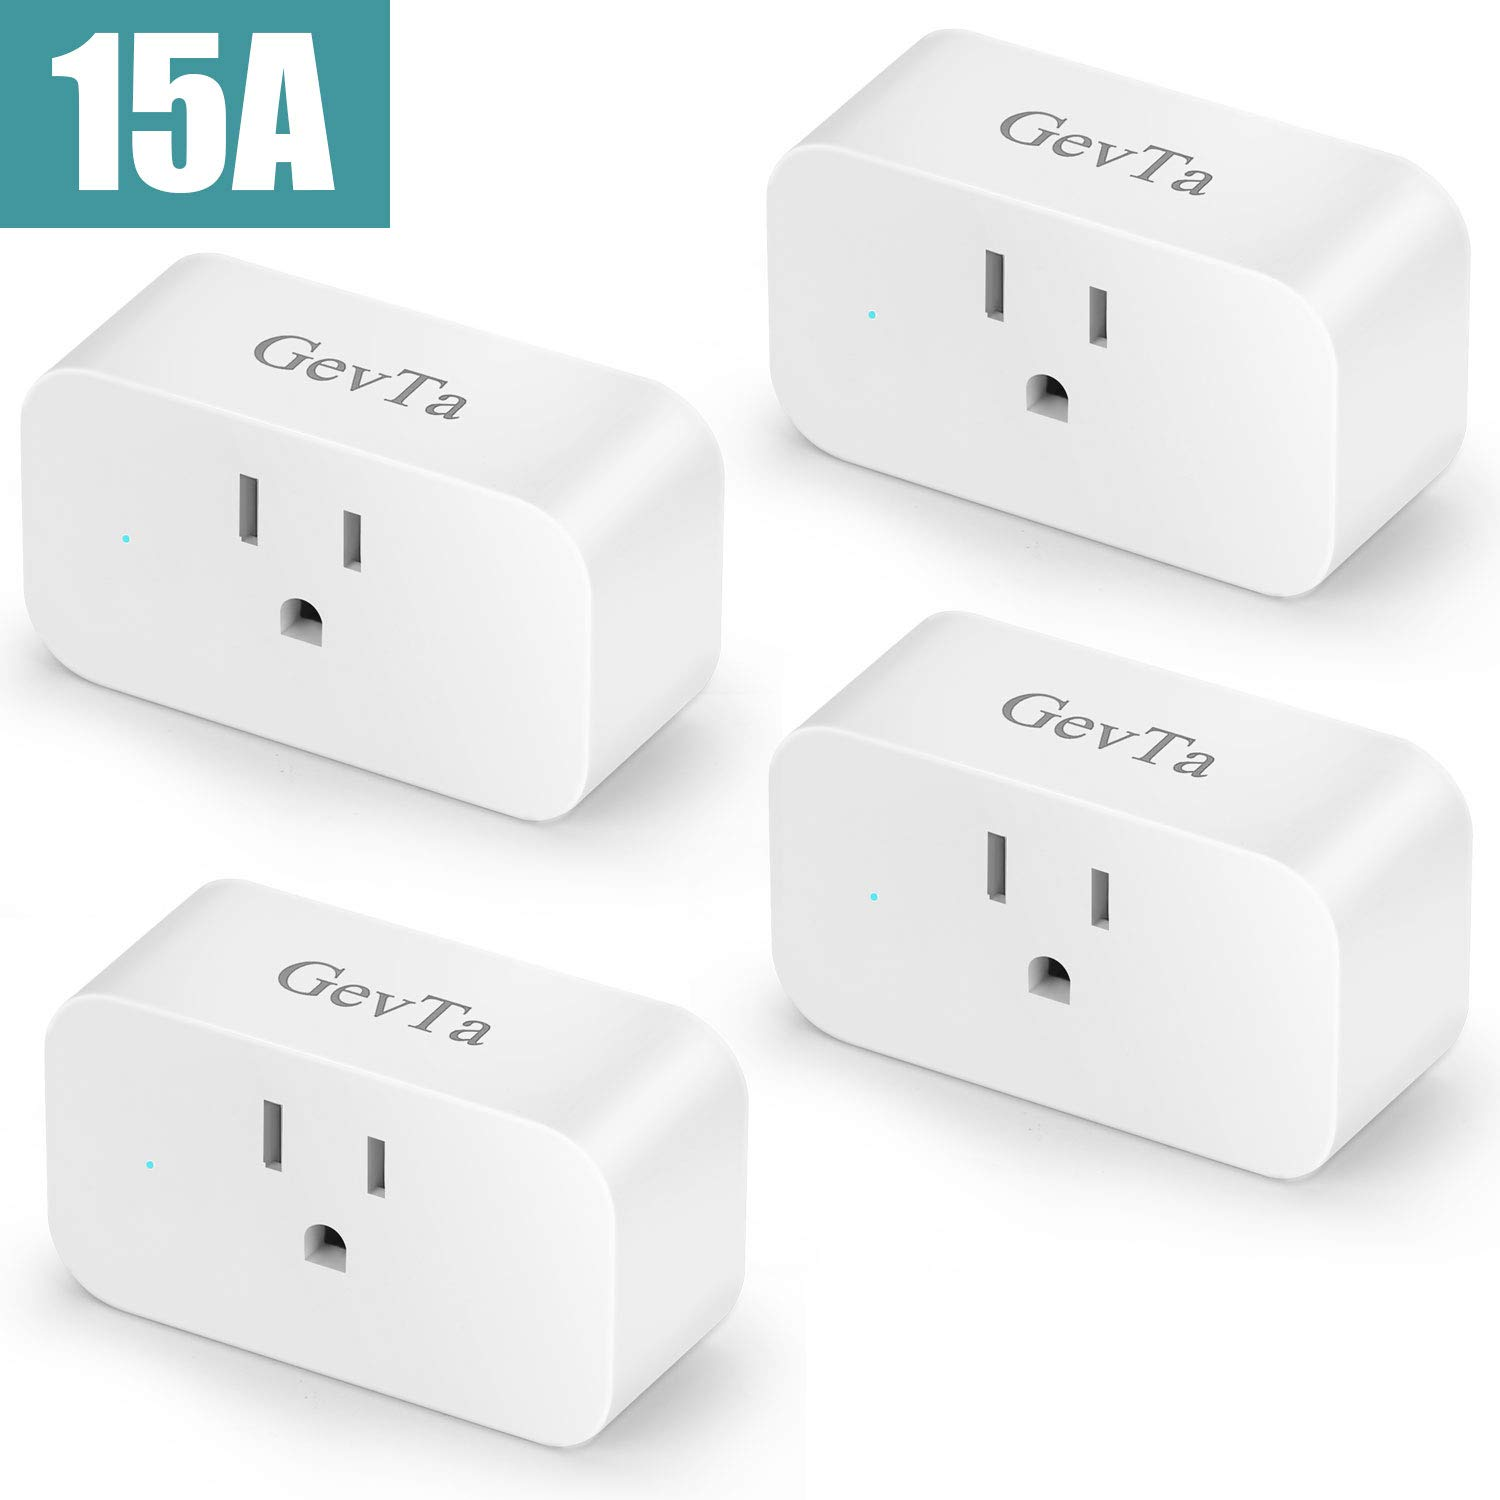 GevTa Wifi Smart Wall Plug Compatible with Alexa,Google Home,IFTTT,Wireless Remote Control Timer Socket Power Switch Outlet